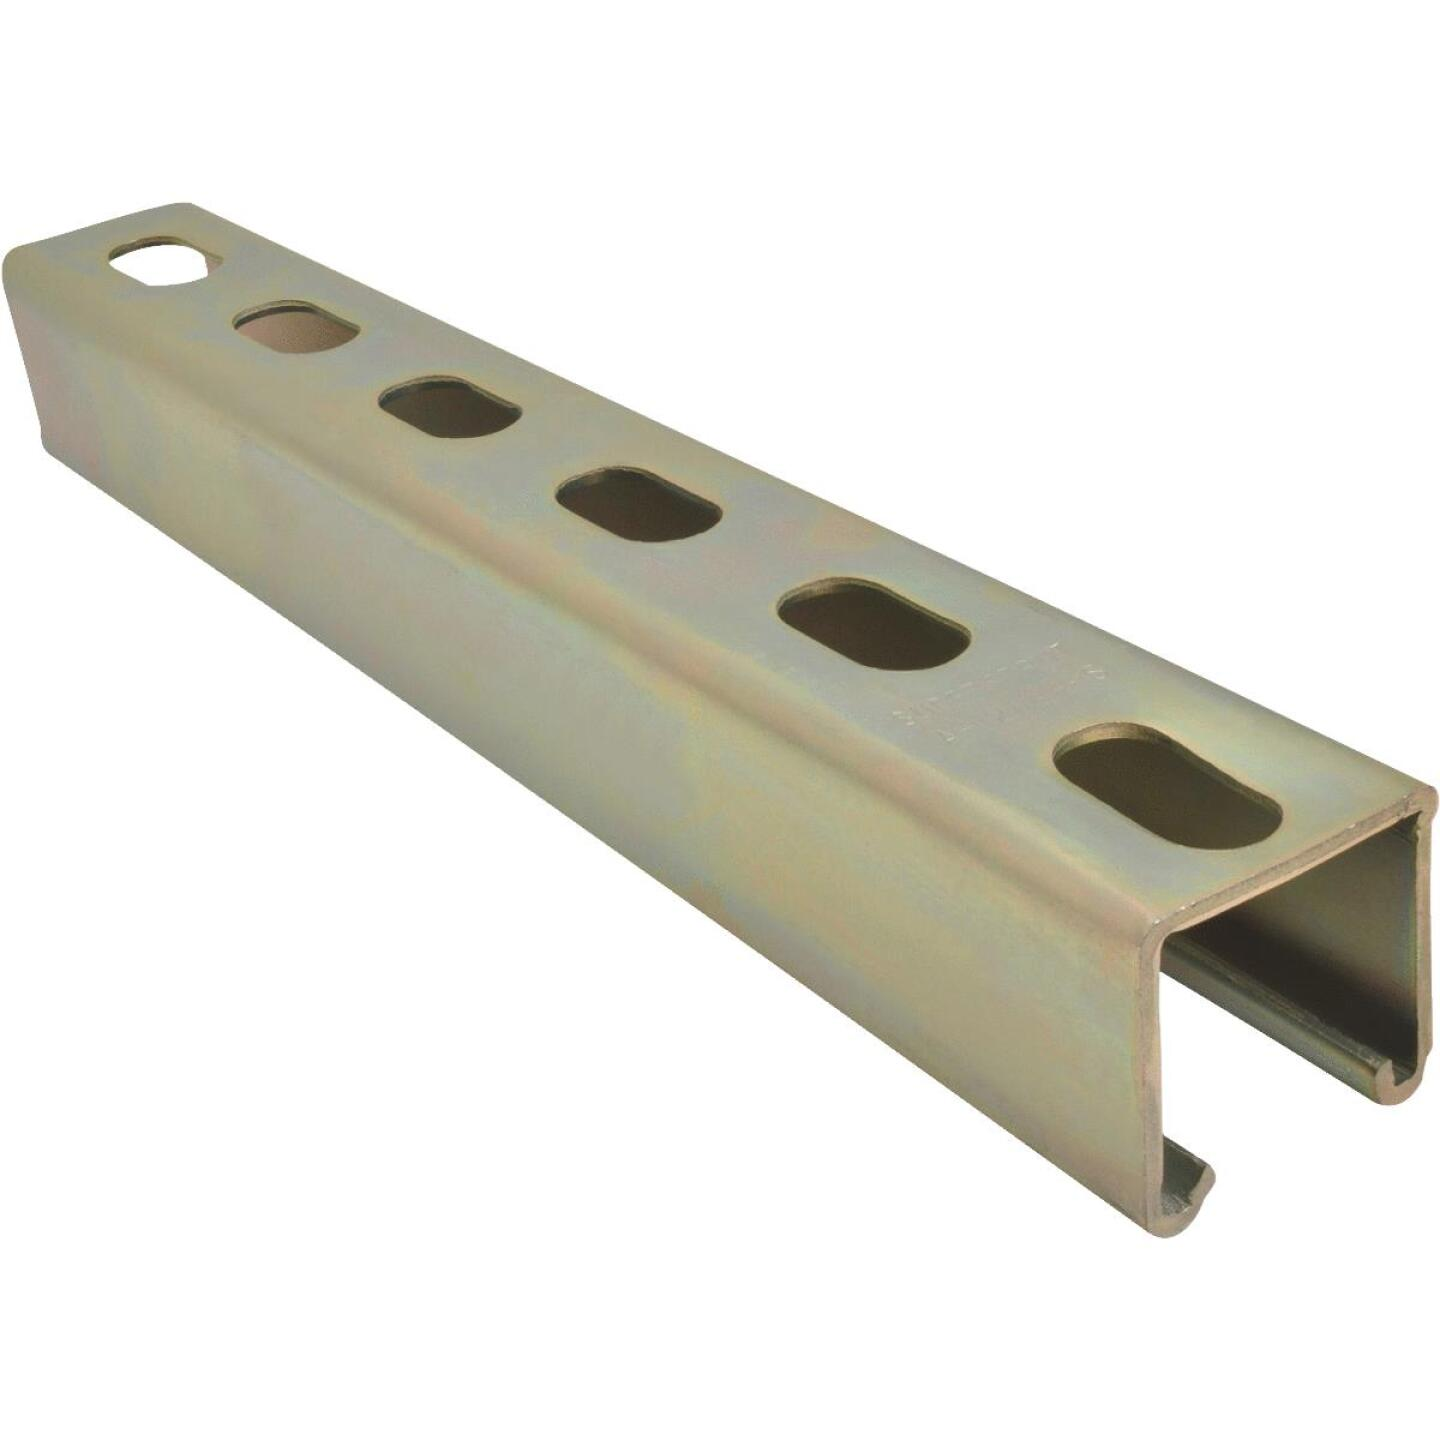 Superstrut 4 ft. 12 Ga. Gold Galvanized Electroplated Zinc Strut Channel Image 1